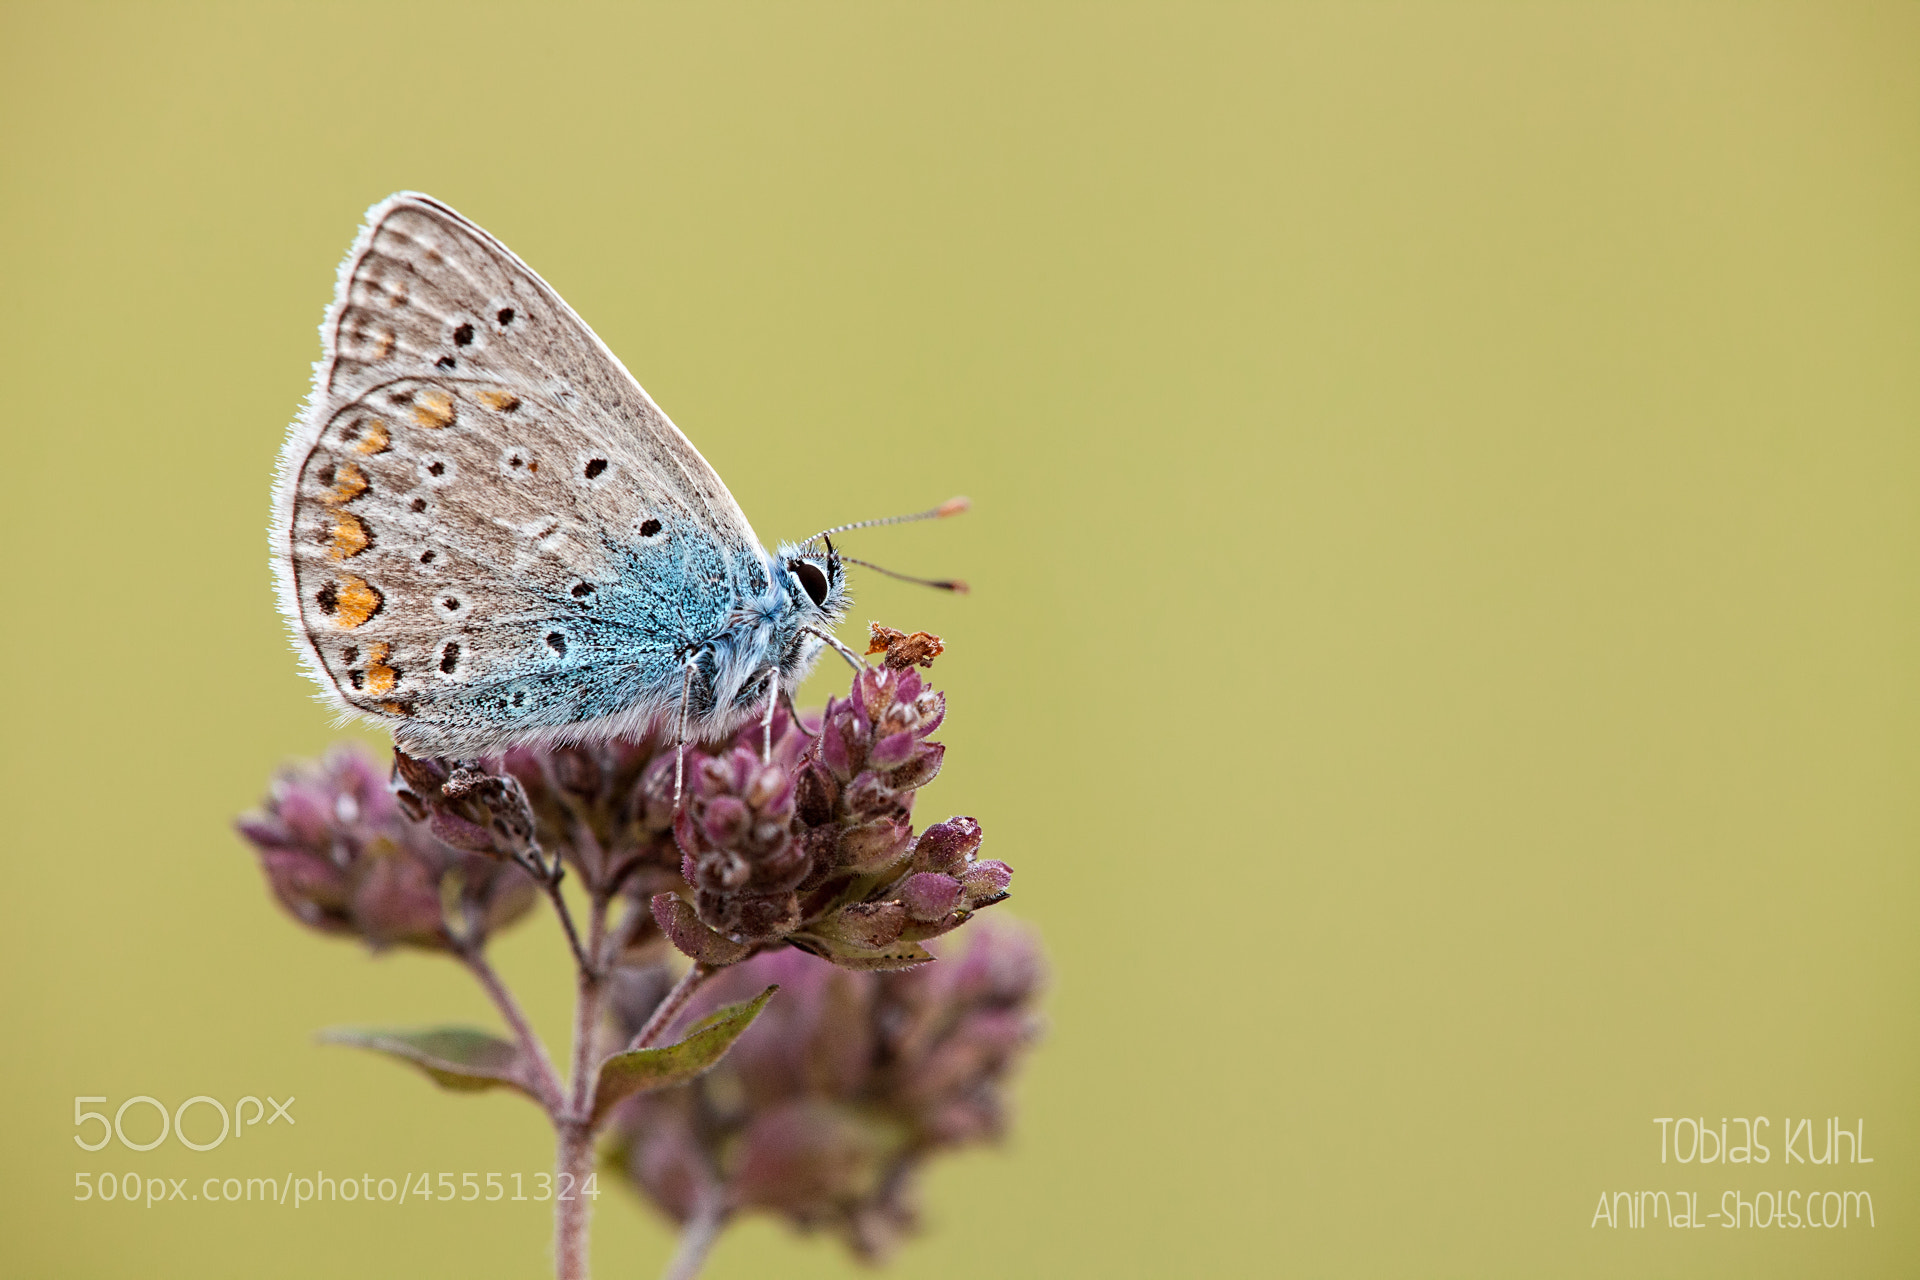 Photograph Simplicity by Tobias Kuhl on 500px